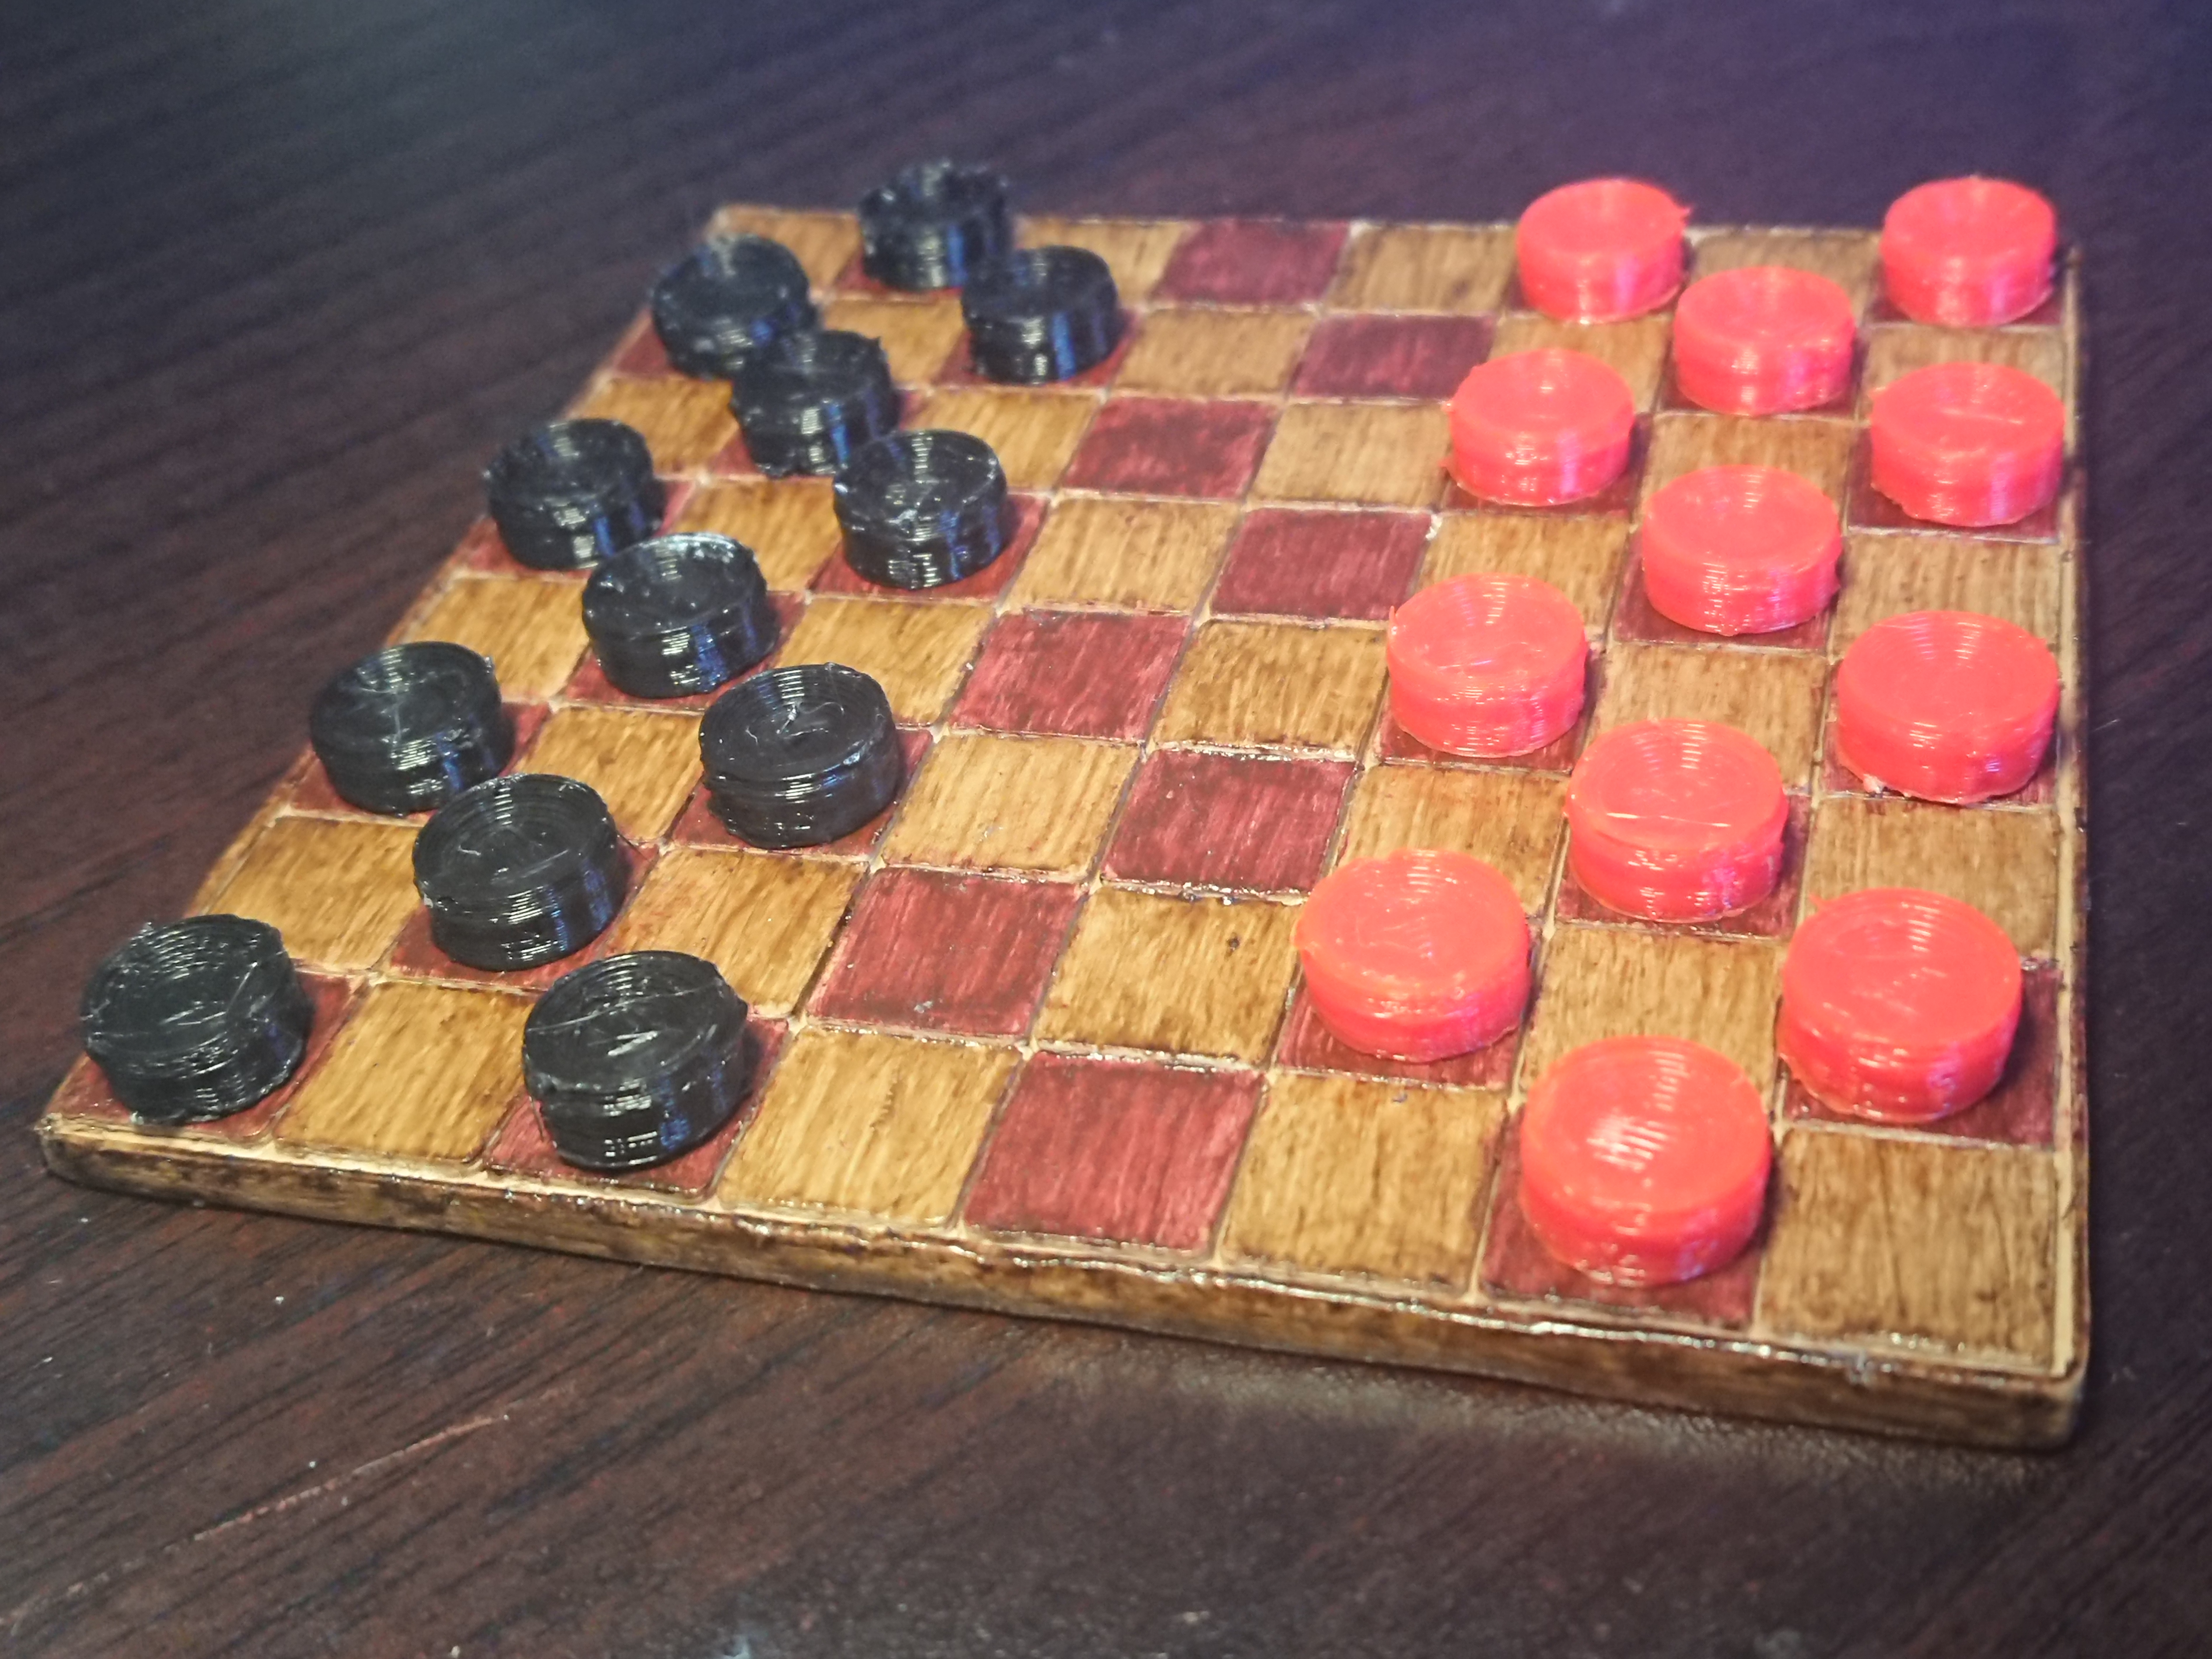 Magnetic Checkers Set | Miniature sized with magnets tabletop classic game